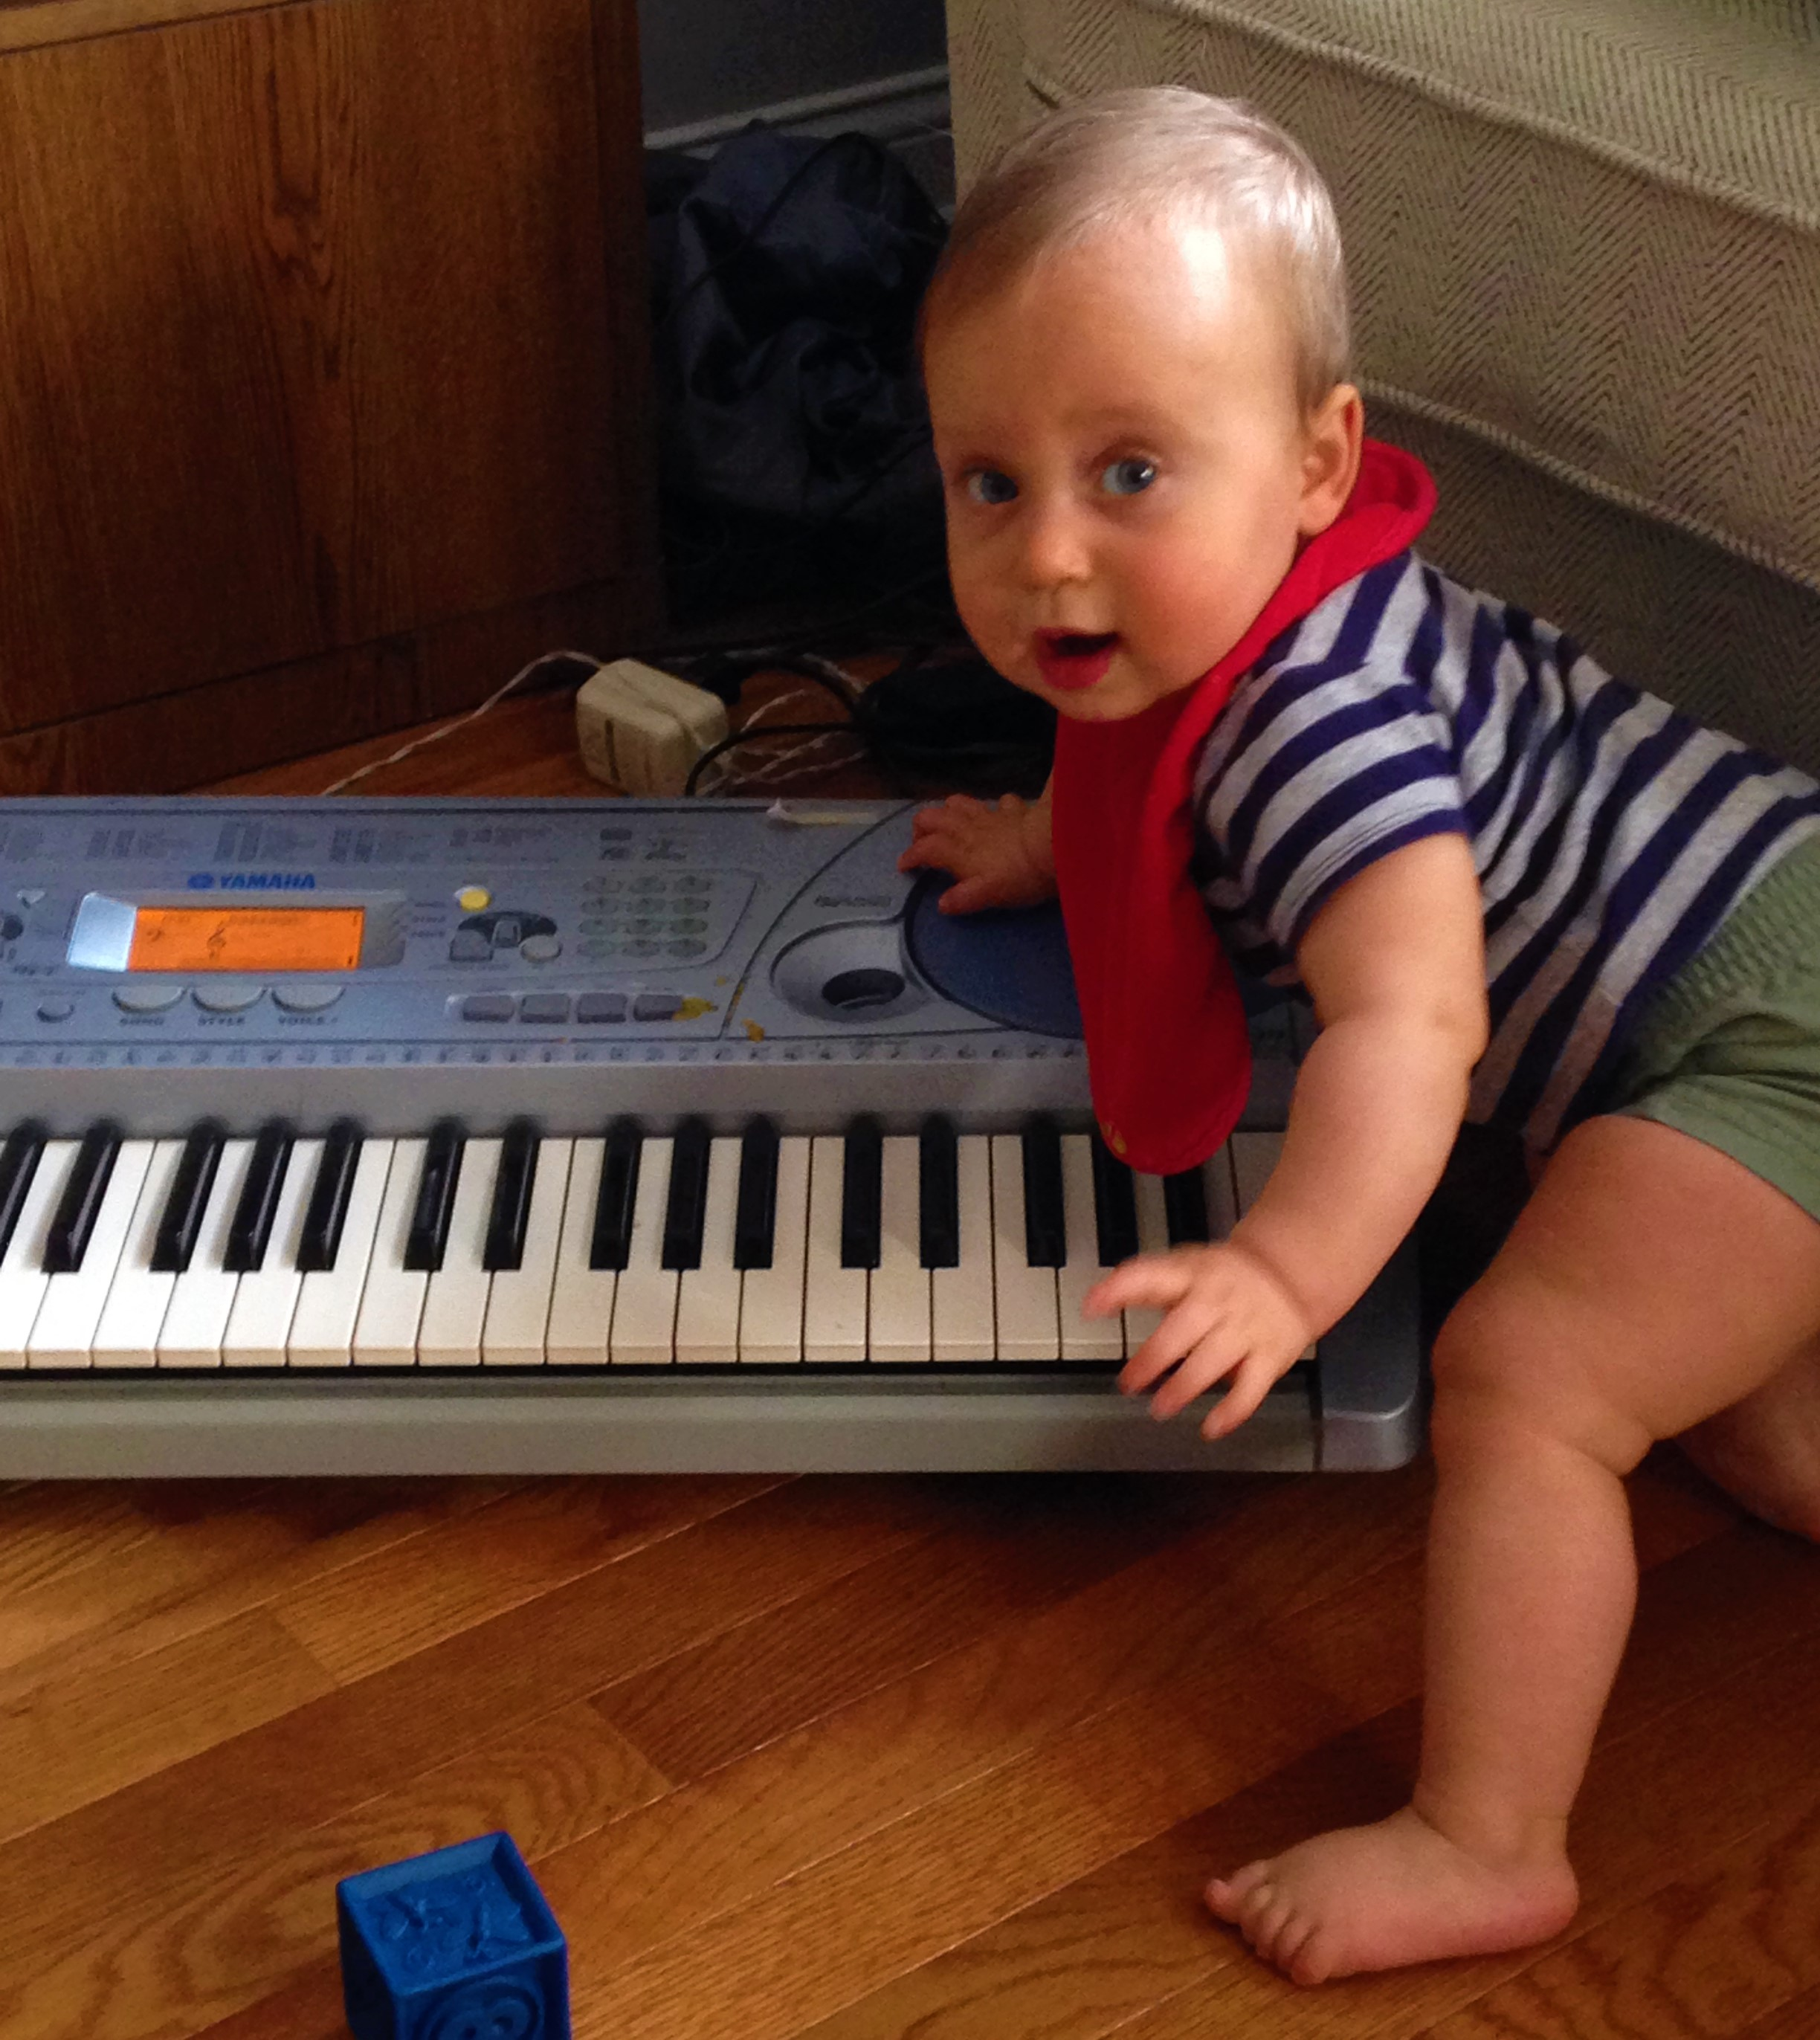 At What Age Should My Child Start Piano Lessons